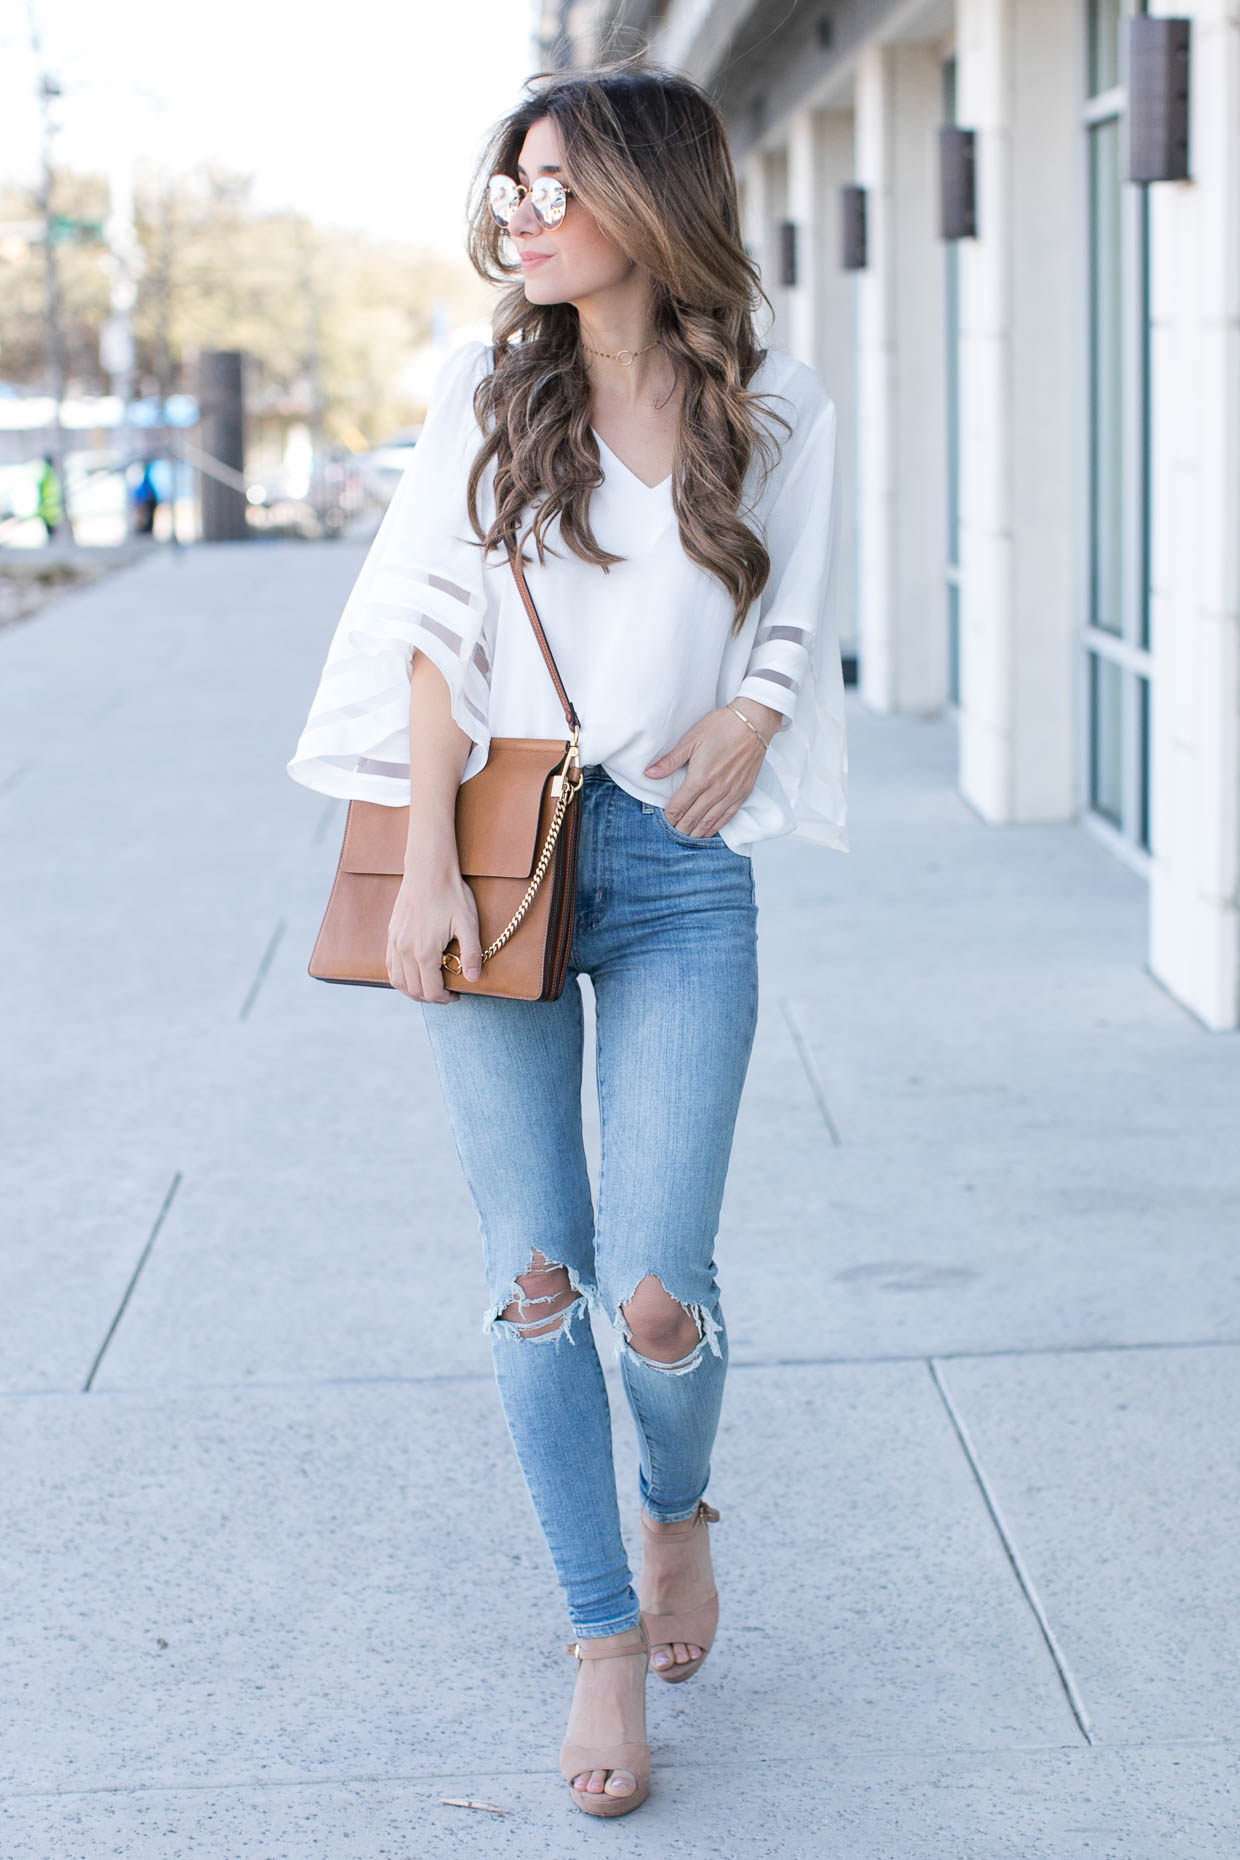 Spring Must Have Items: My Must-Have Blouse For Spring